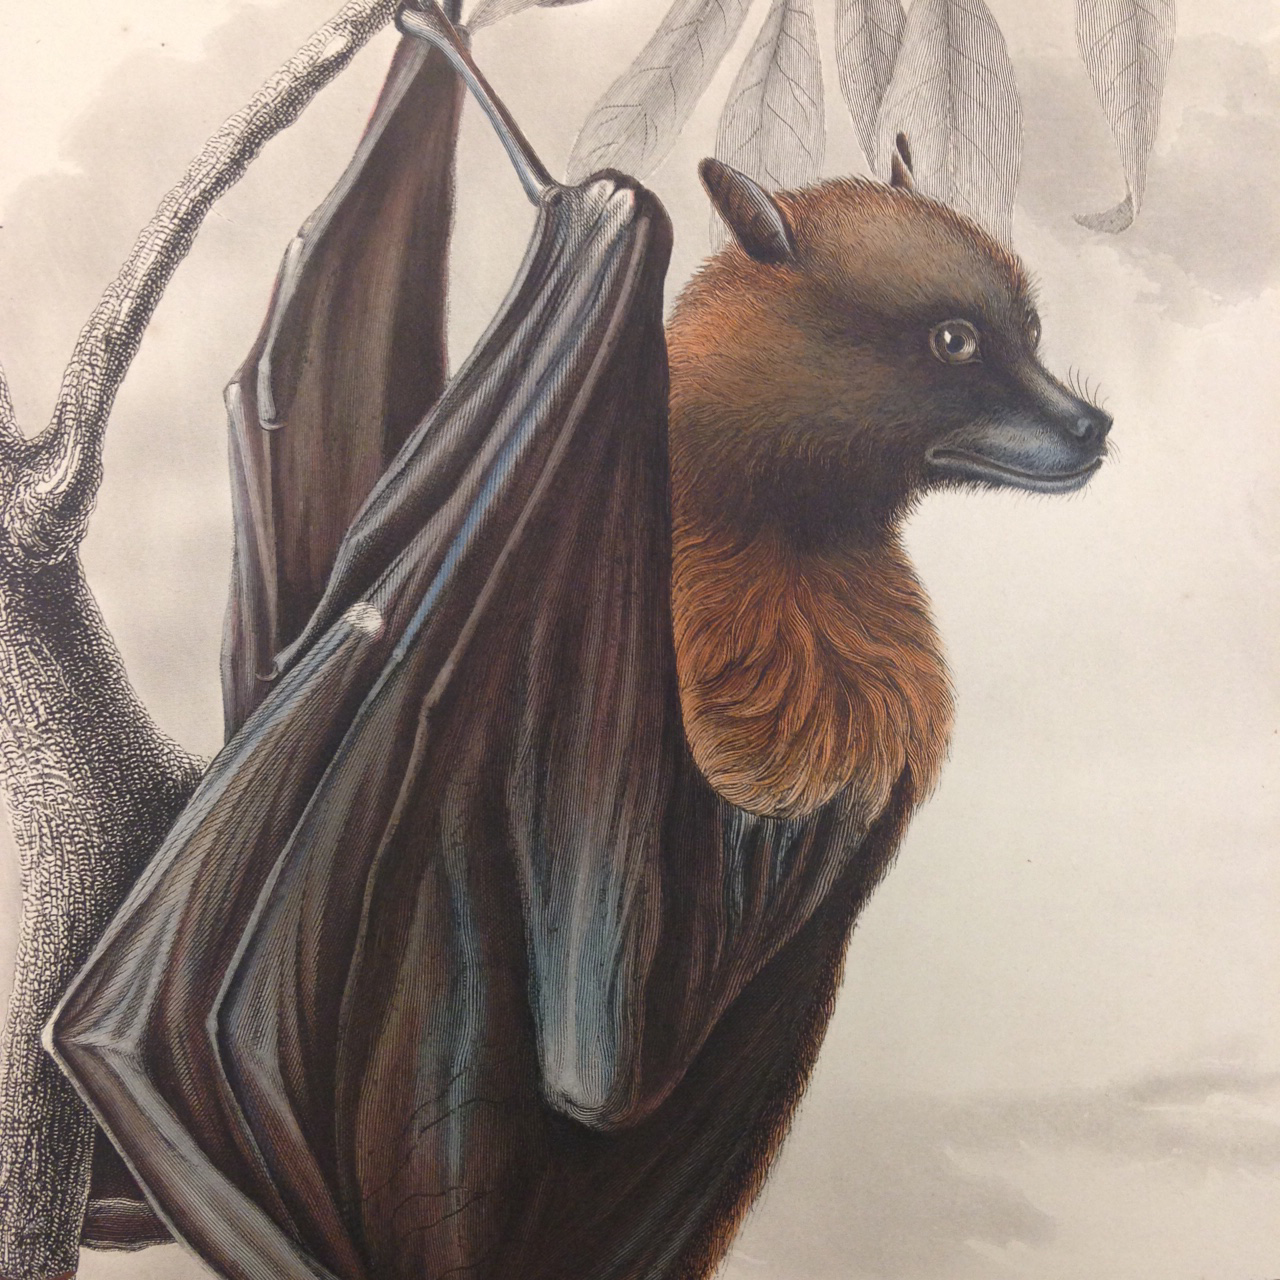 Mammalogy, Plate 2: Pteropus samoensis (Samoan Flying Fox). – Those details, though. Close observation of these plates reveals the skill and painstaking detail put into each engraved plate.